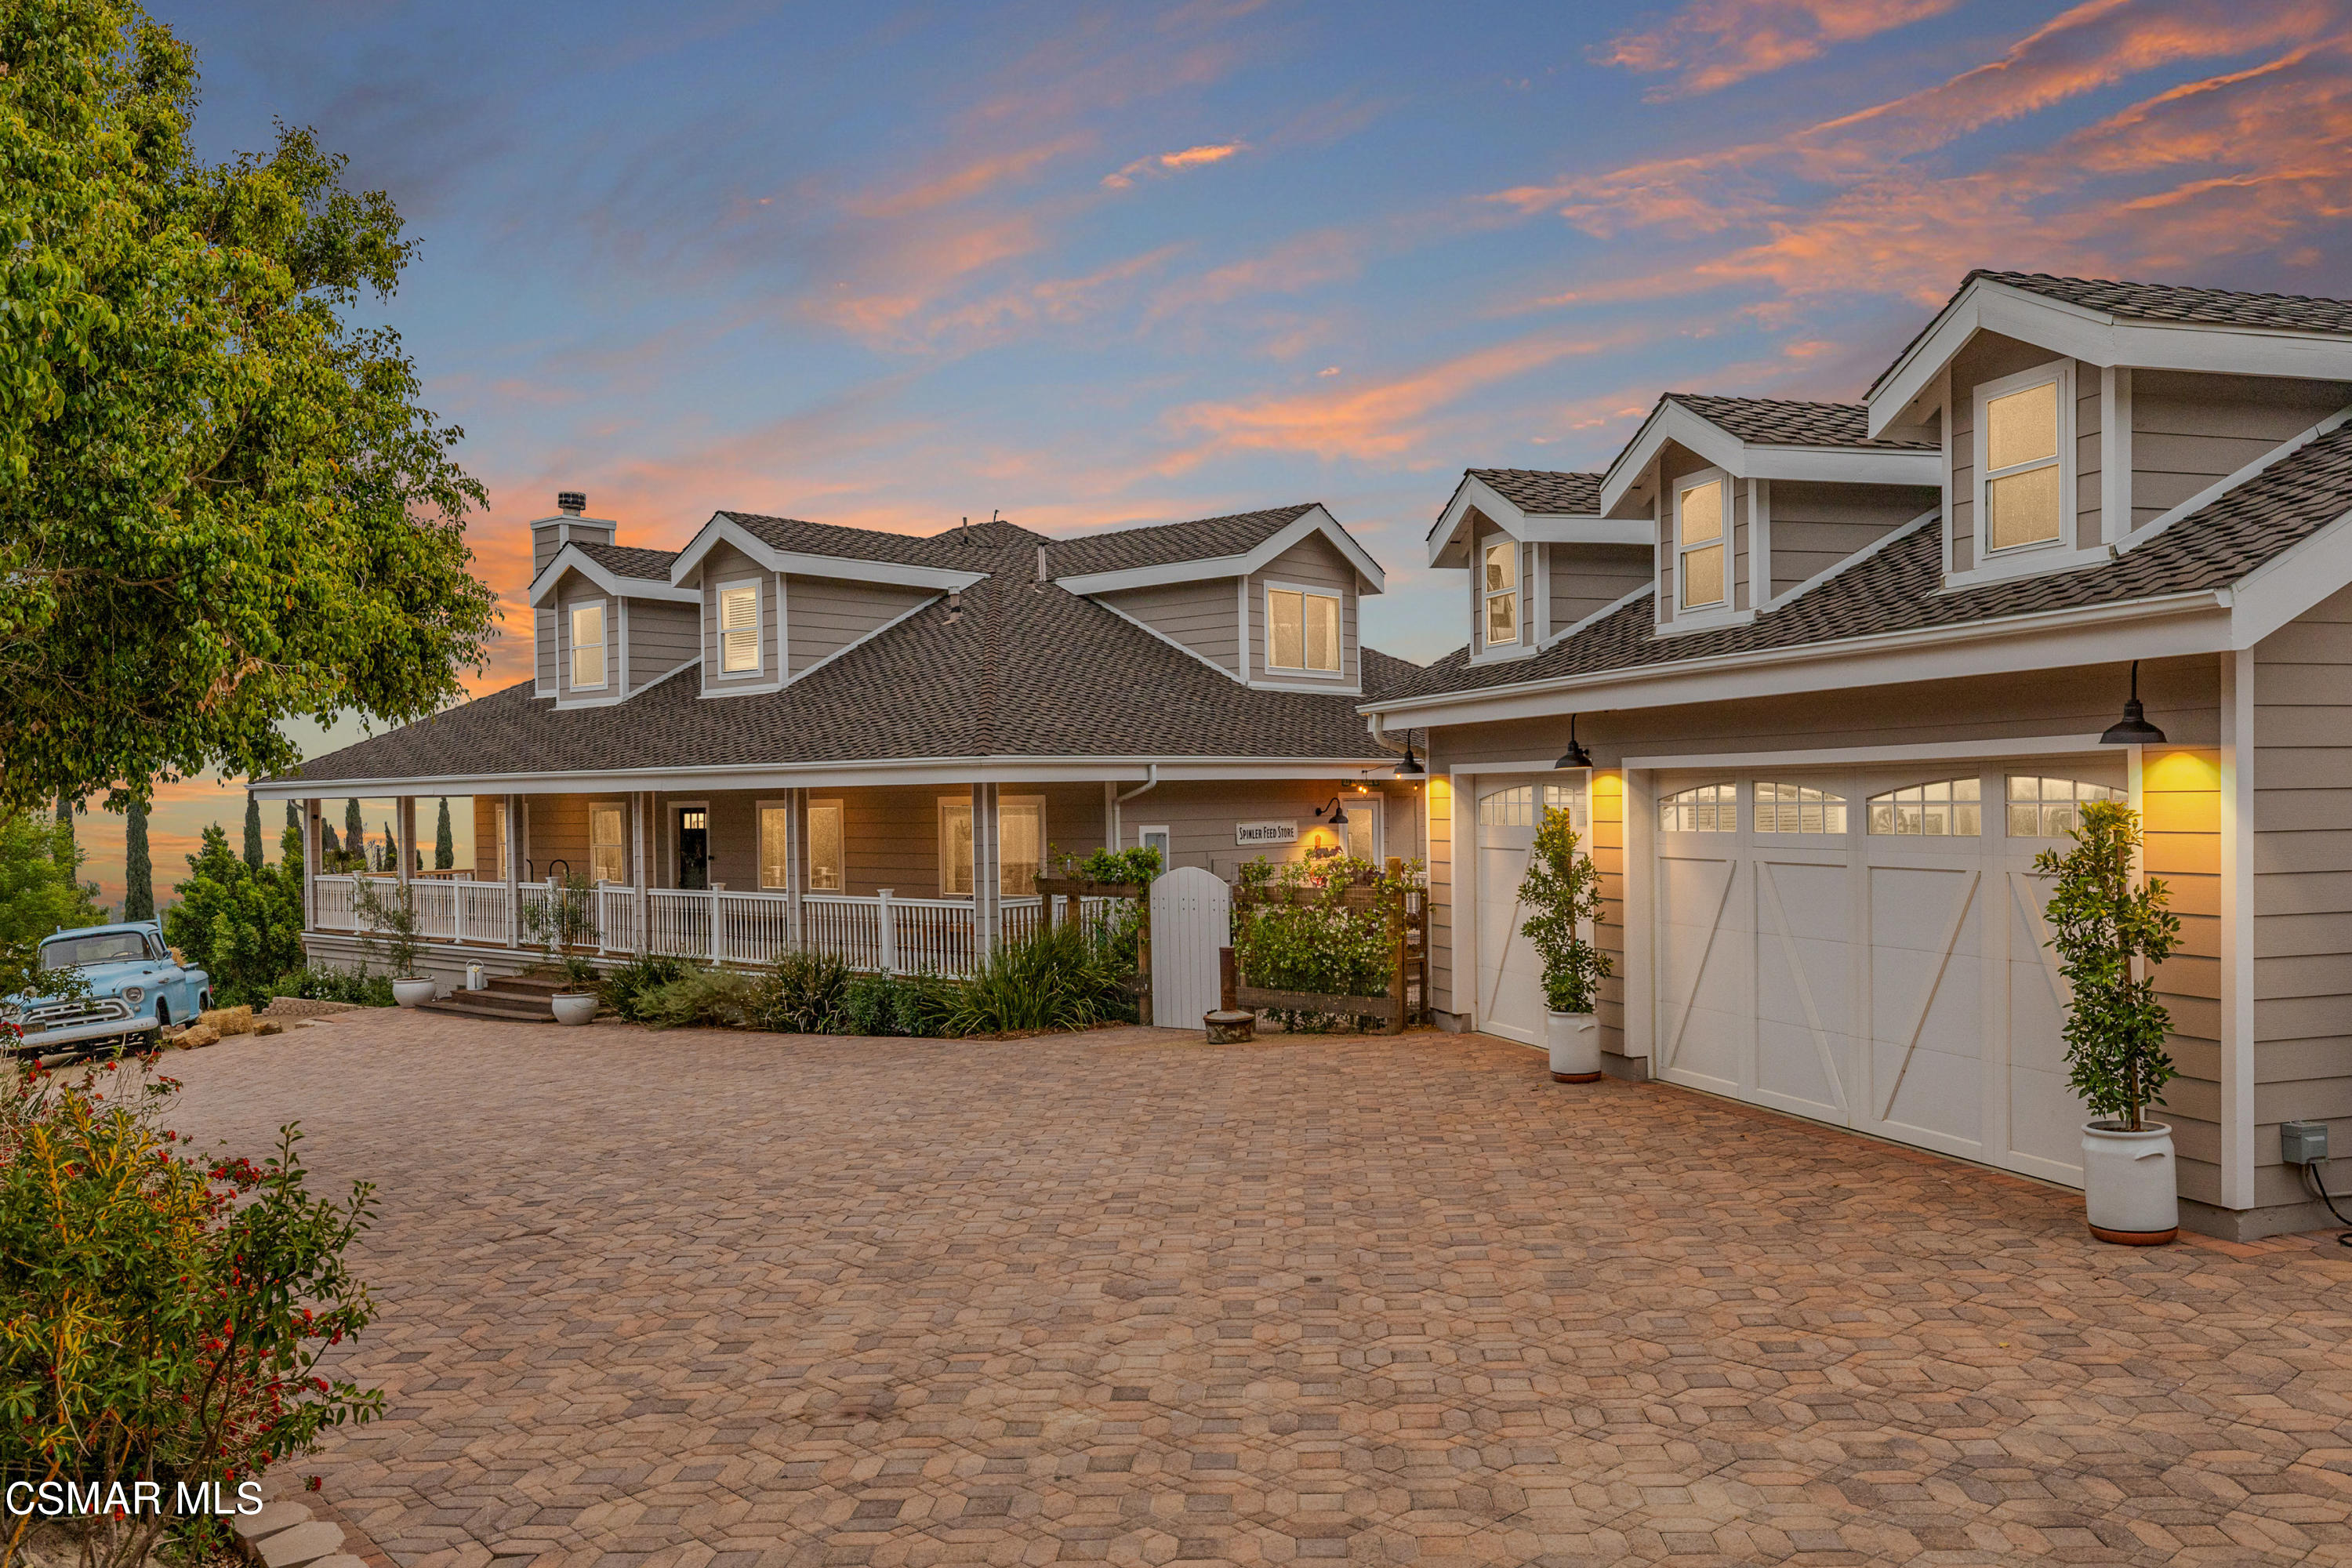 Photo of 3405 Ditch Road, Simi Valley, CA 93063